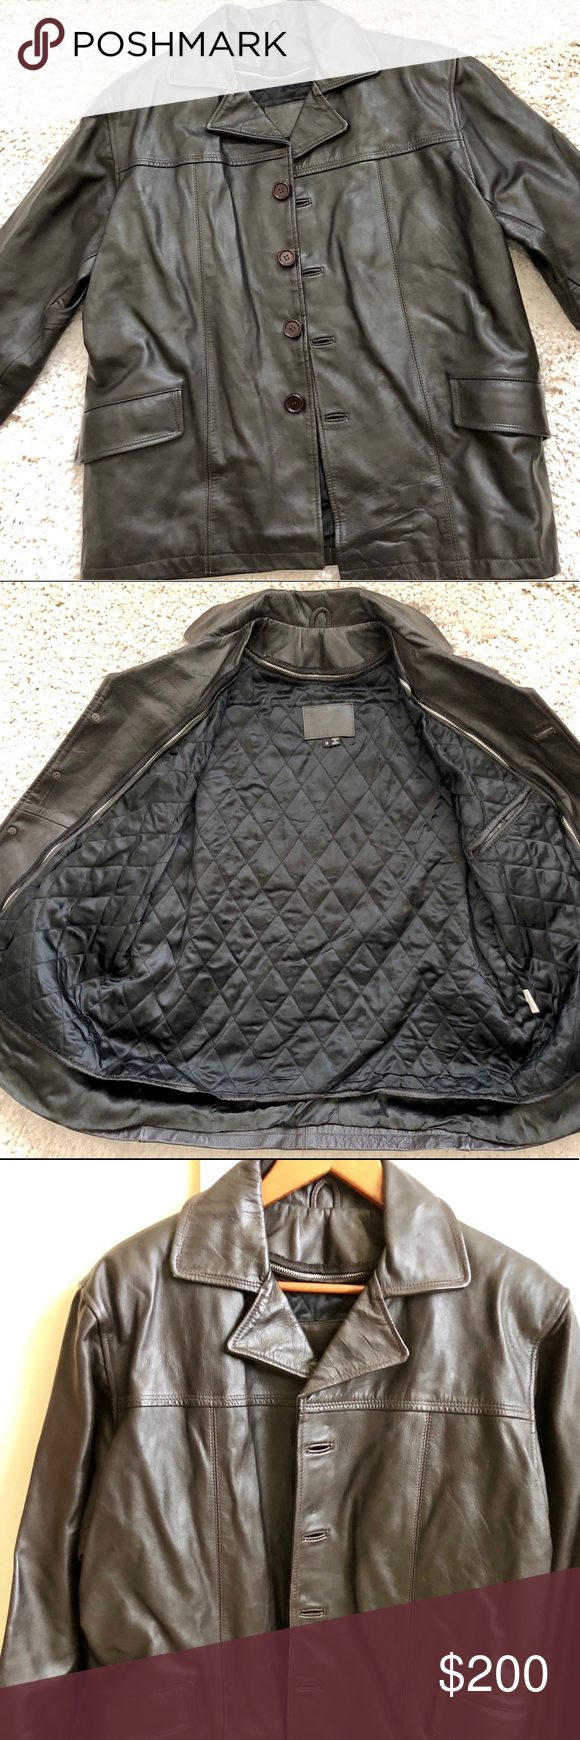 Wilsons Leather Jacket (With images) Wilsons leather